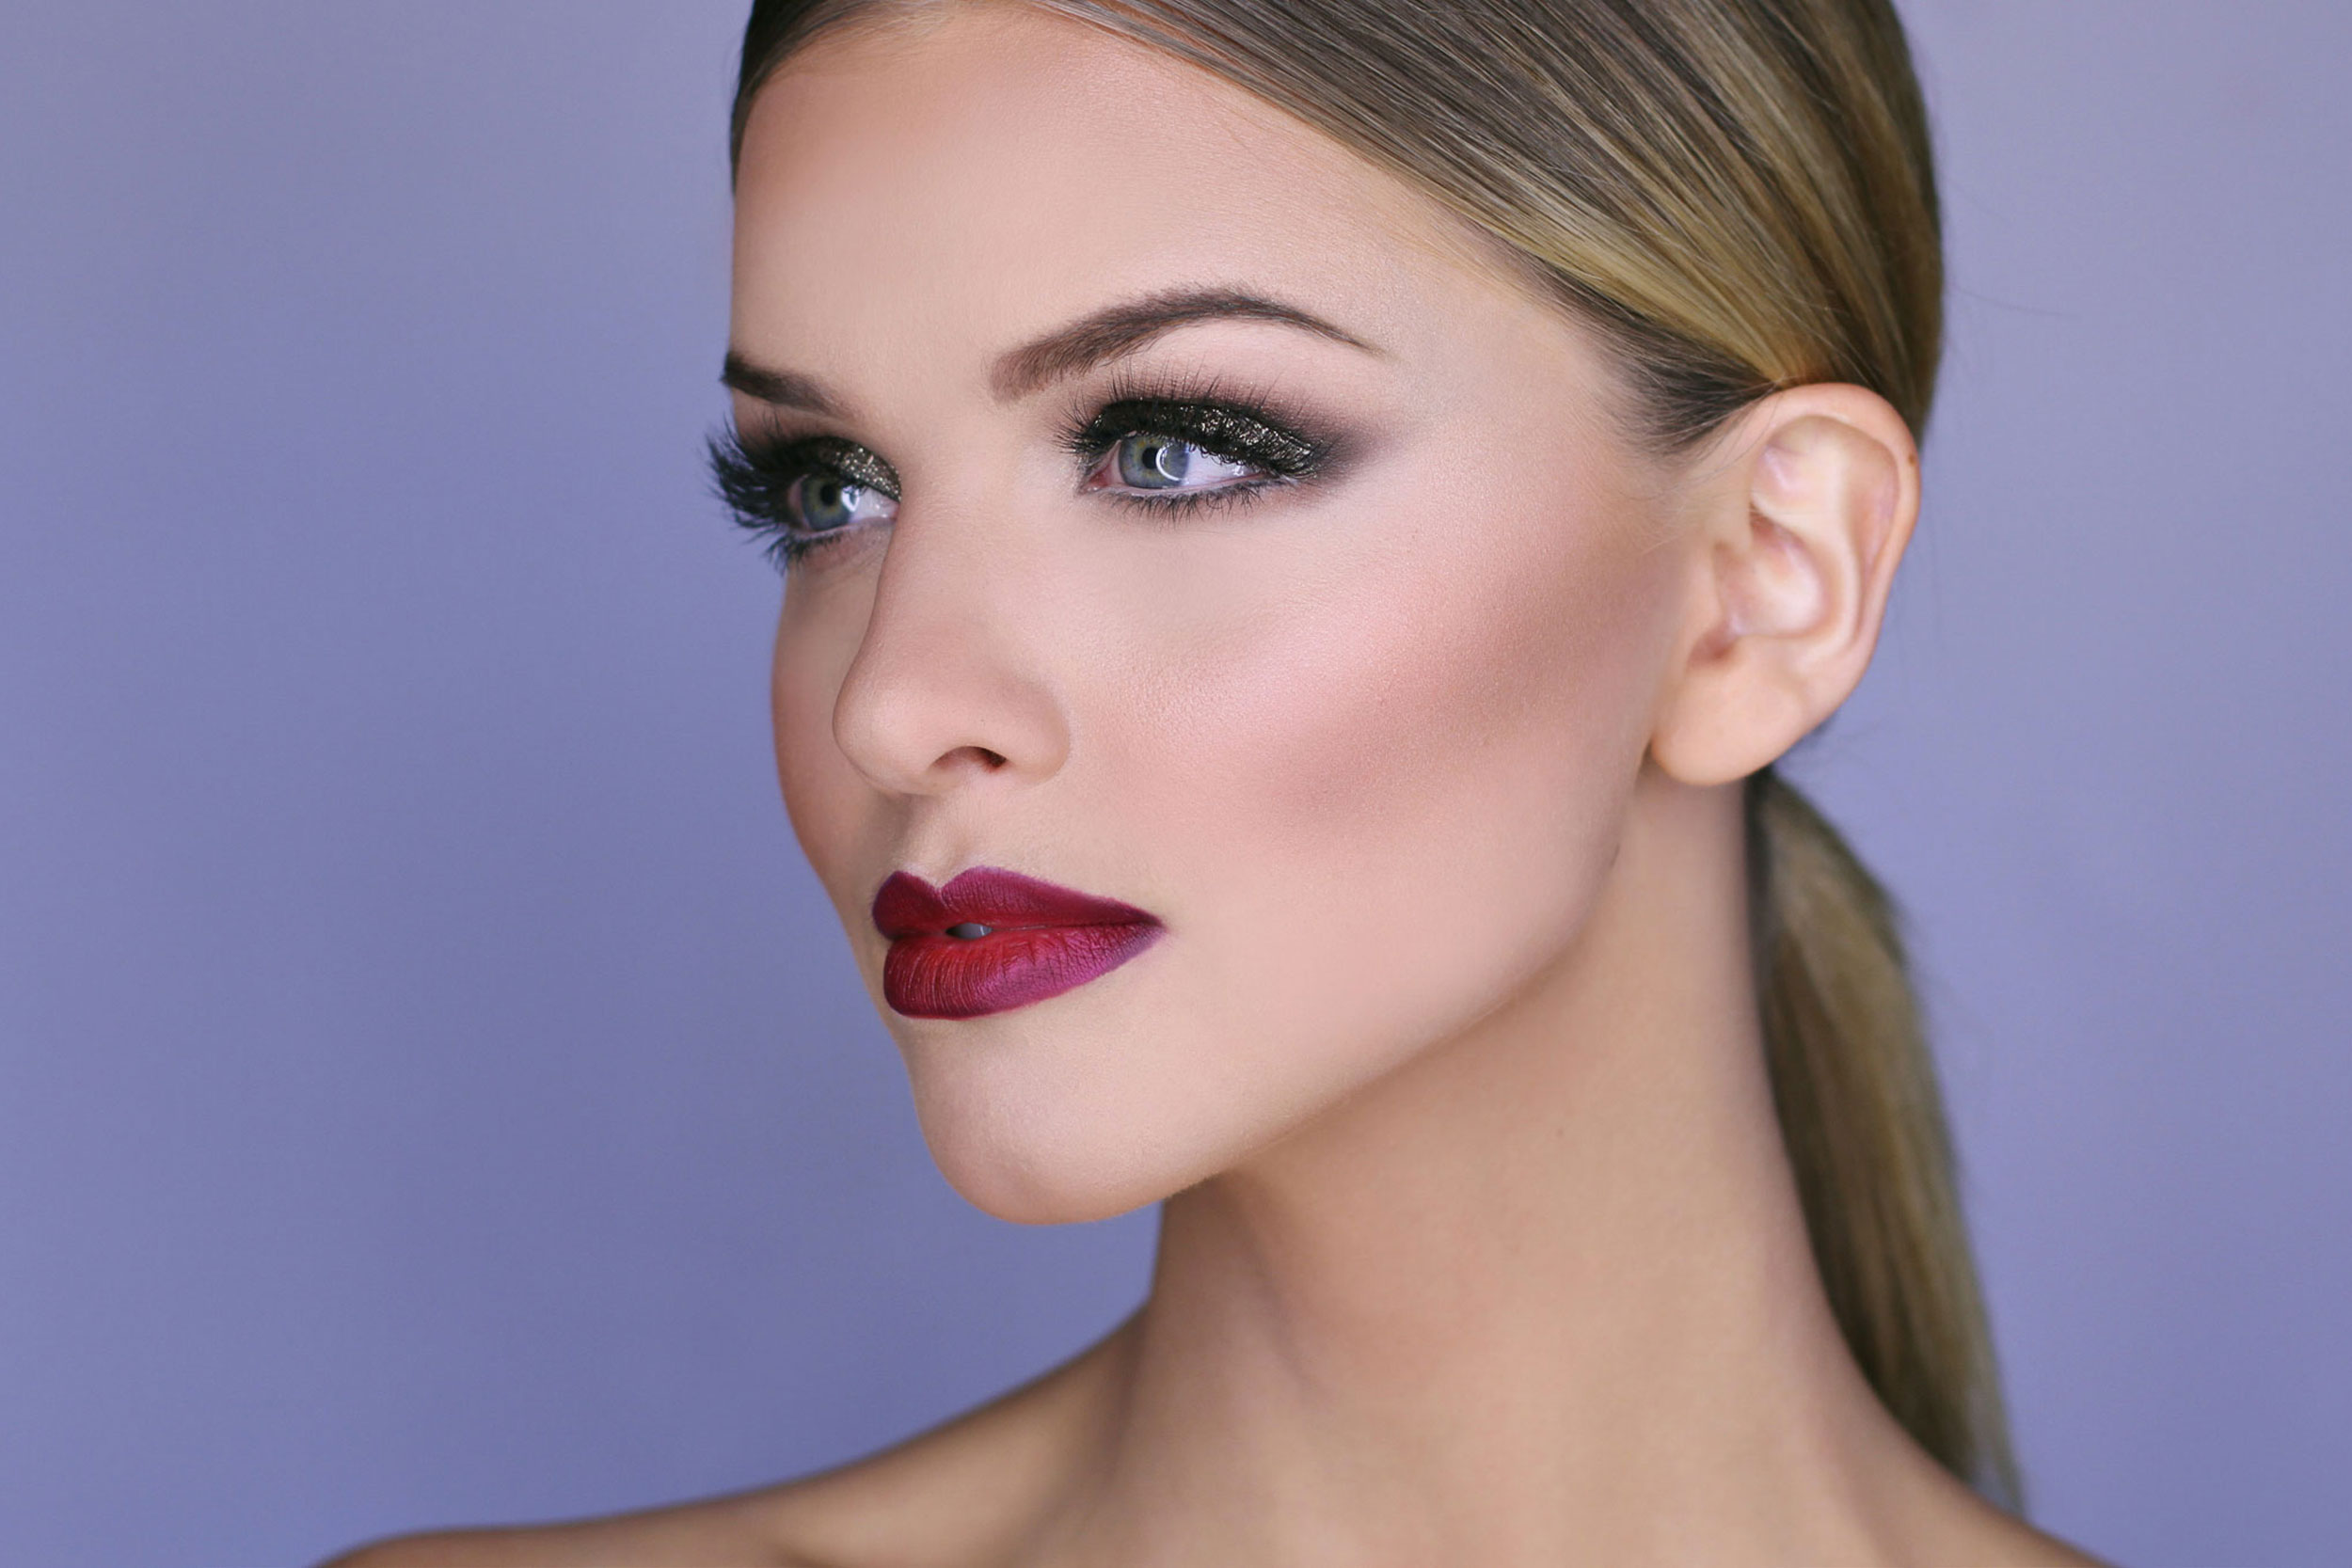 fashion style guys prefer full makeup just little lipstick